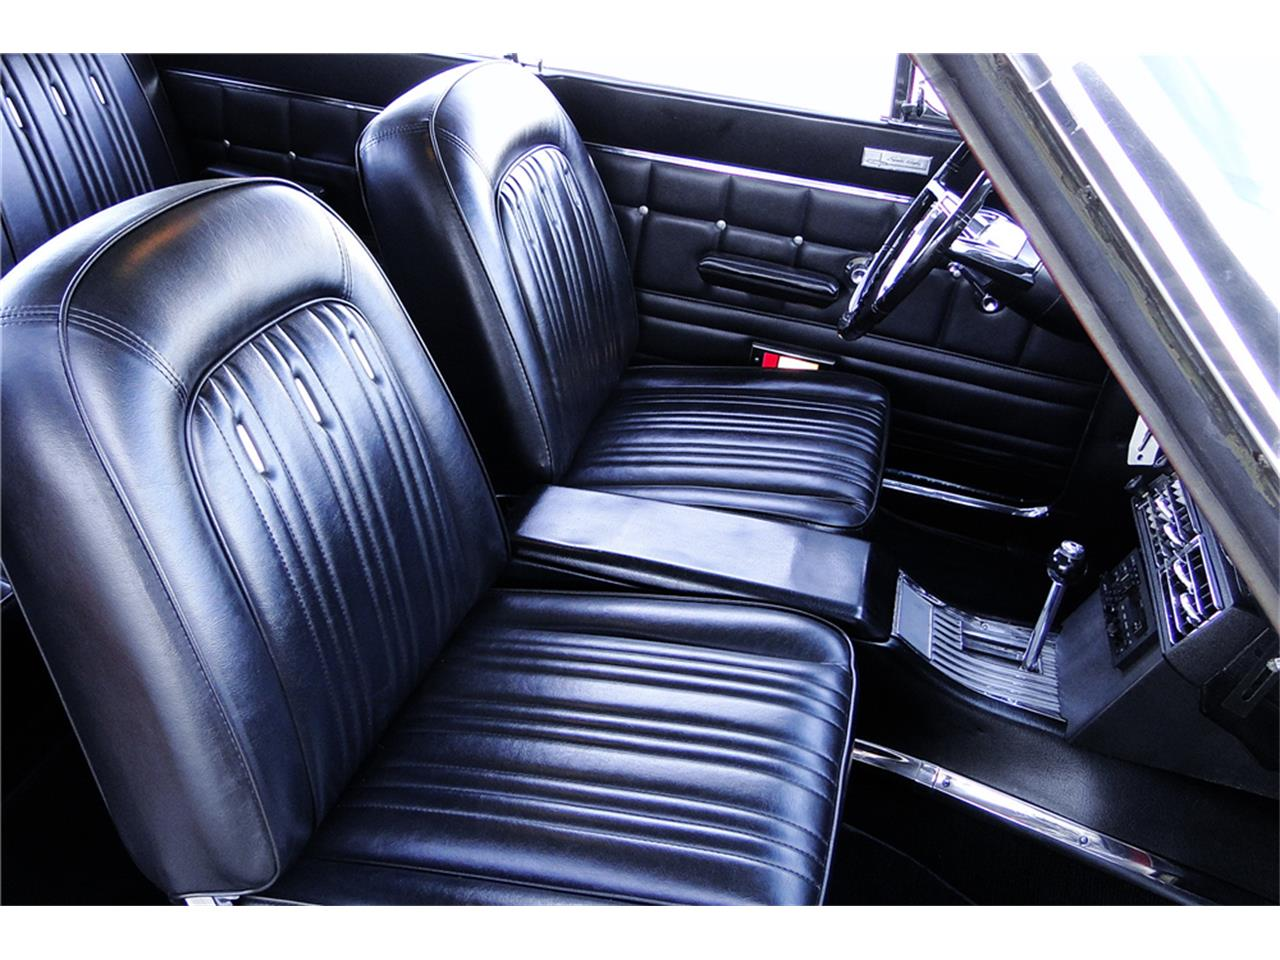 Large Picture of 1965 Ford Fairlane 500 Offered by a Private Seller - OWOY